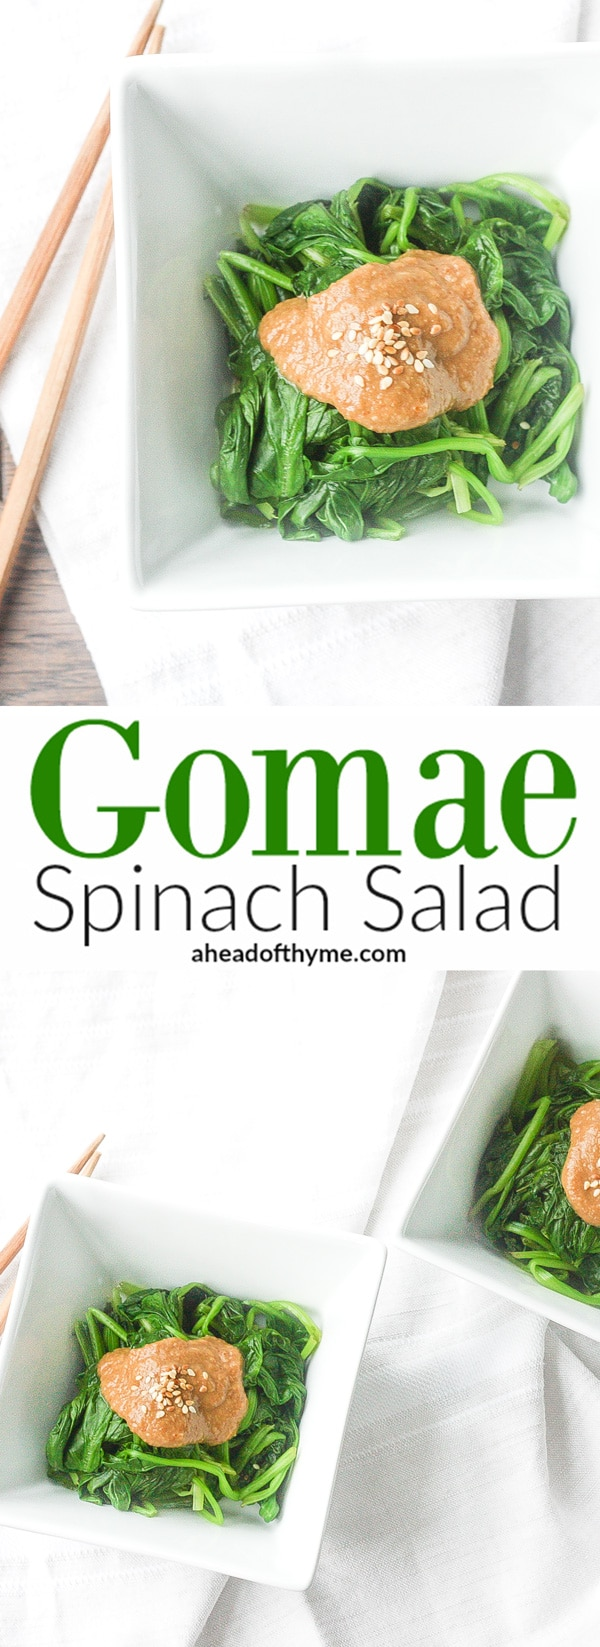 Gomae Spinach Salad: This traditional Japanese side dish is loaded with spinach and seasoned with a delicious, creamy sesame dressing | aheadofthyme.com